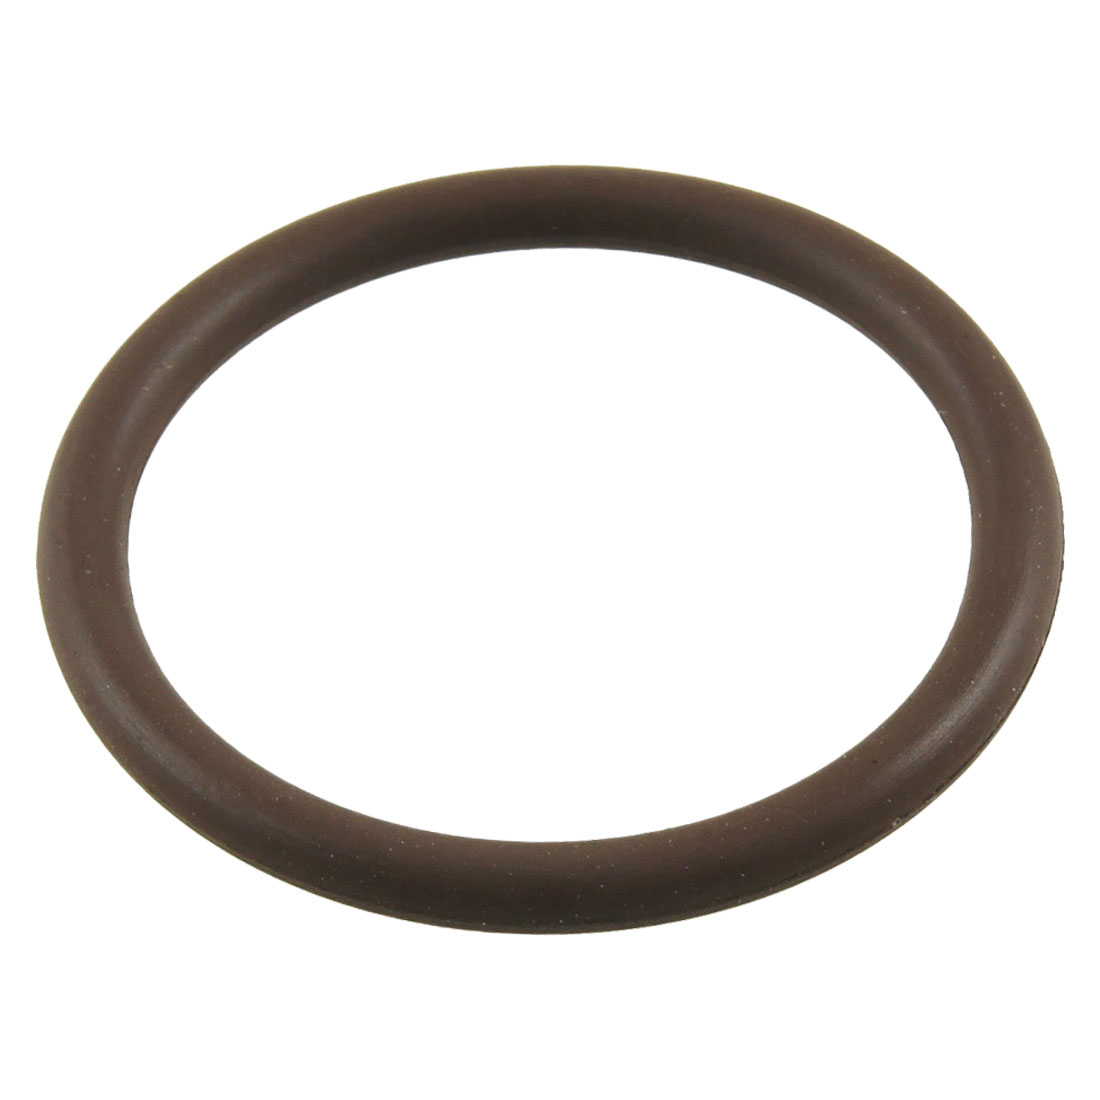 Fluorine-Rubber-O-Ring-Oil-Sealing-Gaskets-34mm-x-28mm-x-3mm